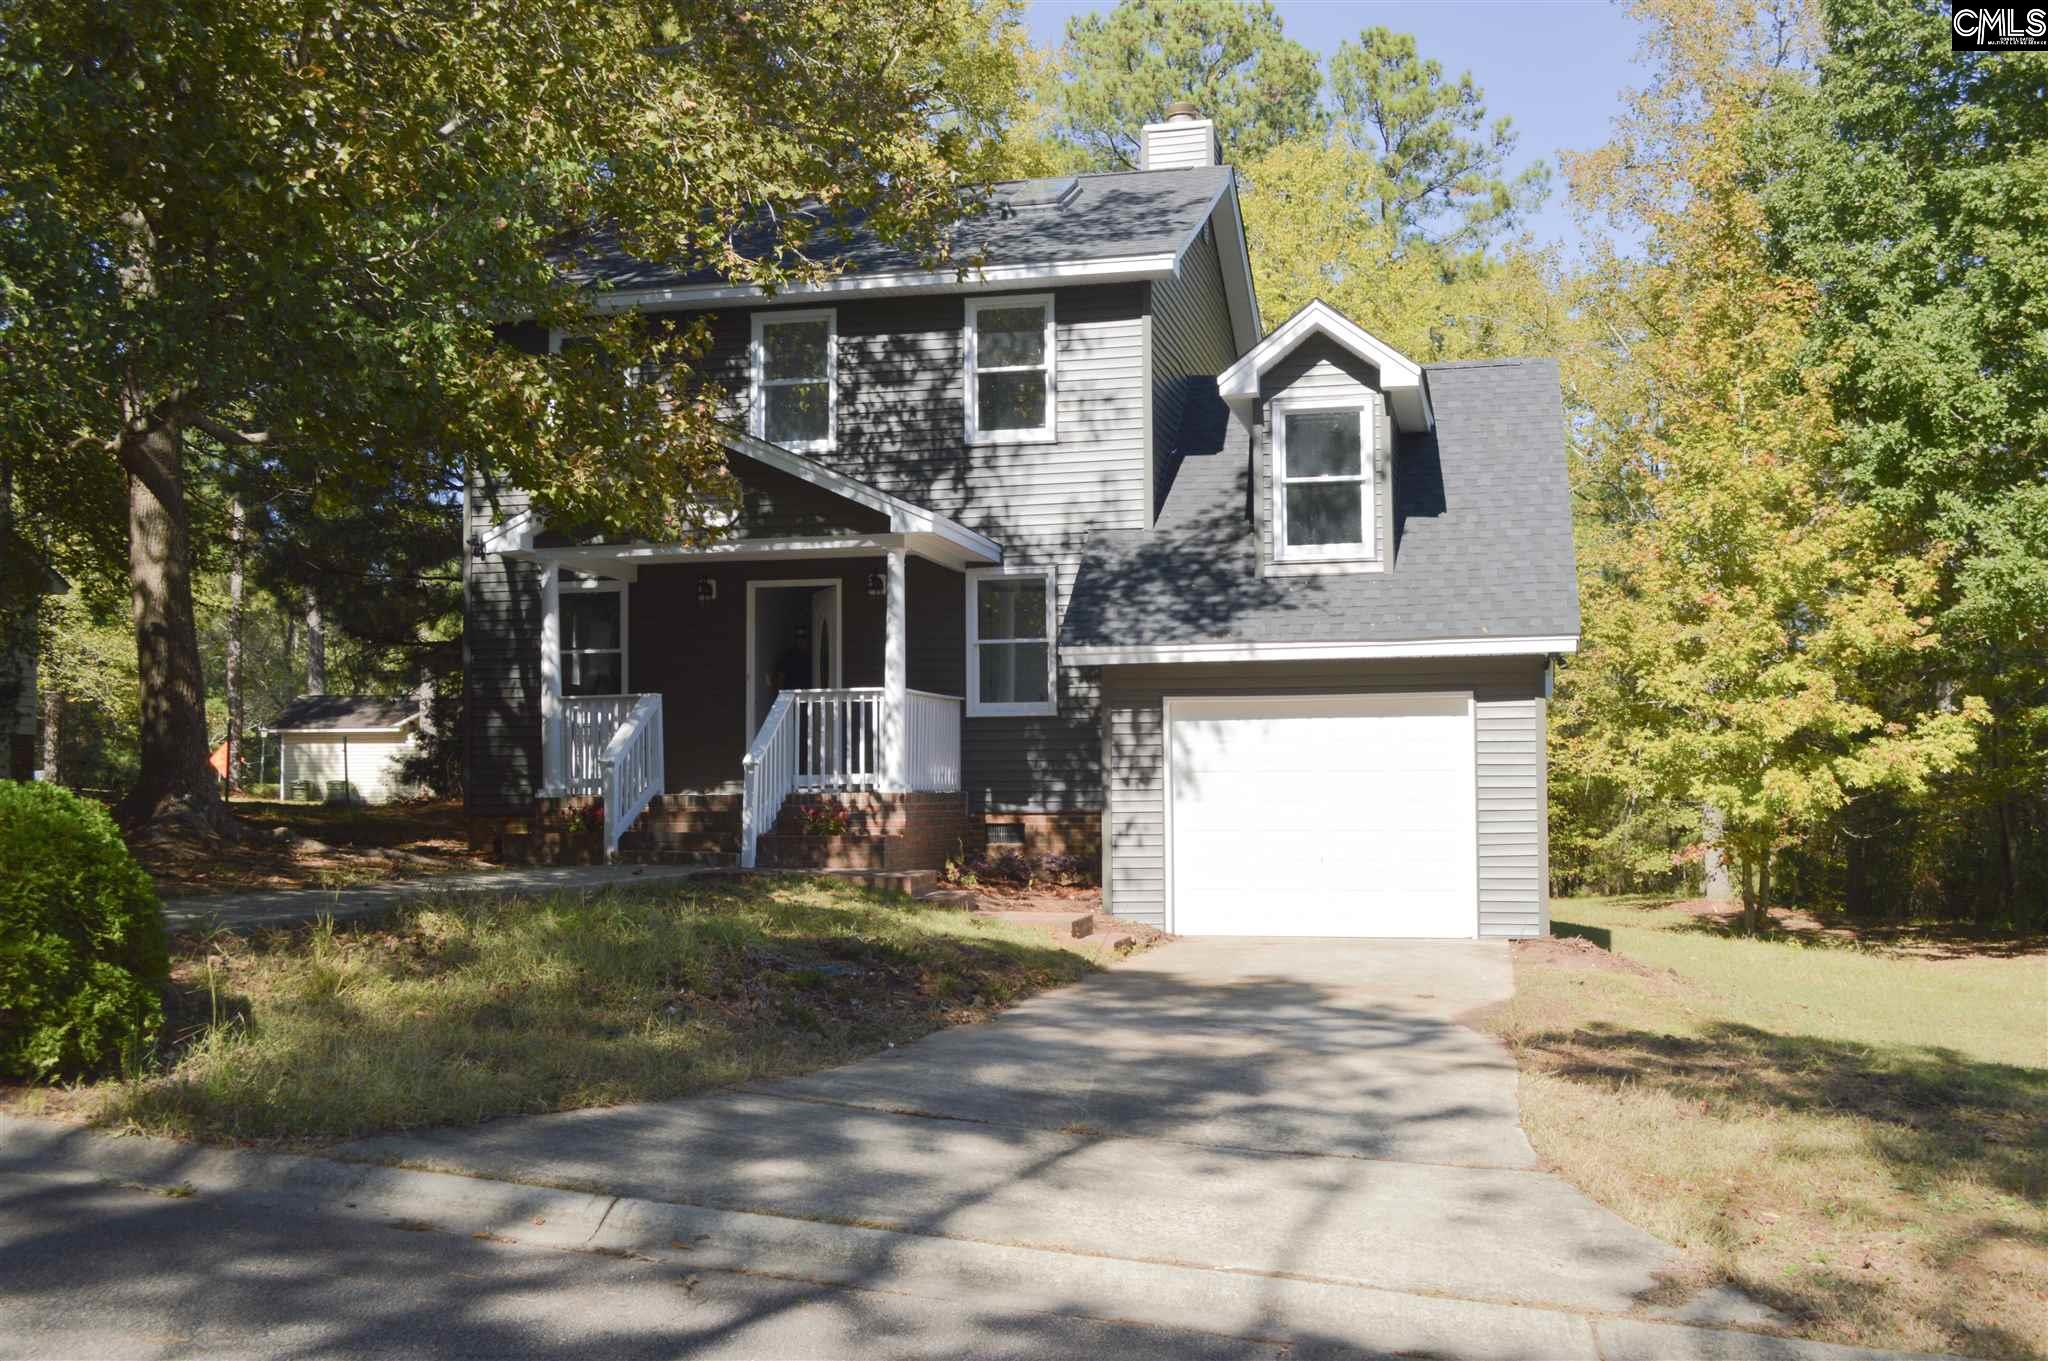 102 Sandcreek Winnsboro, SC 29180